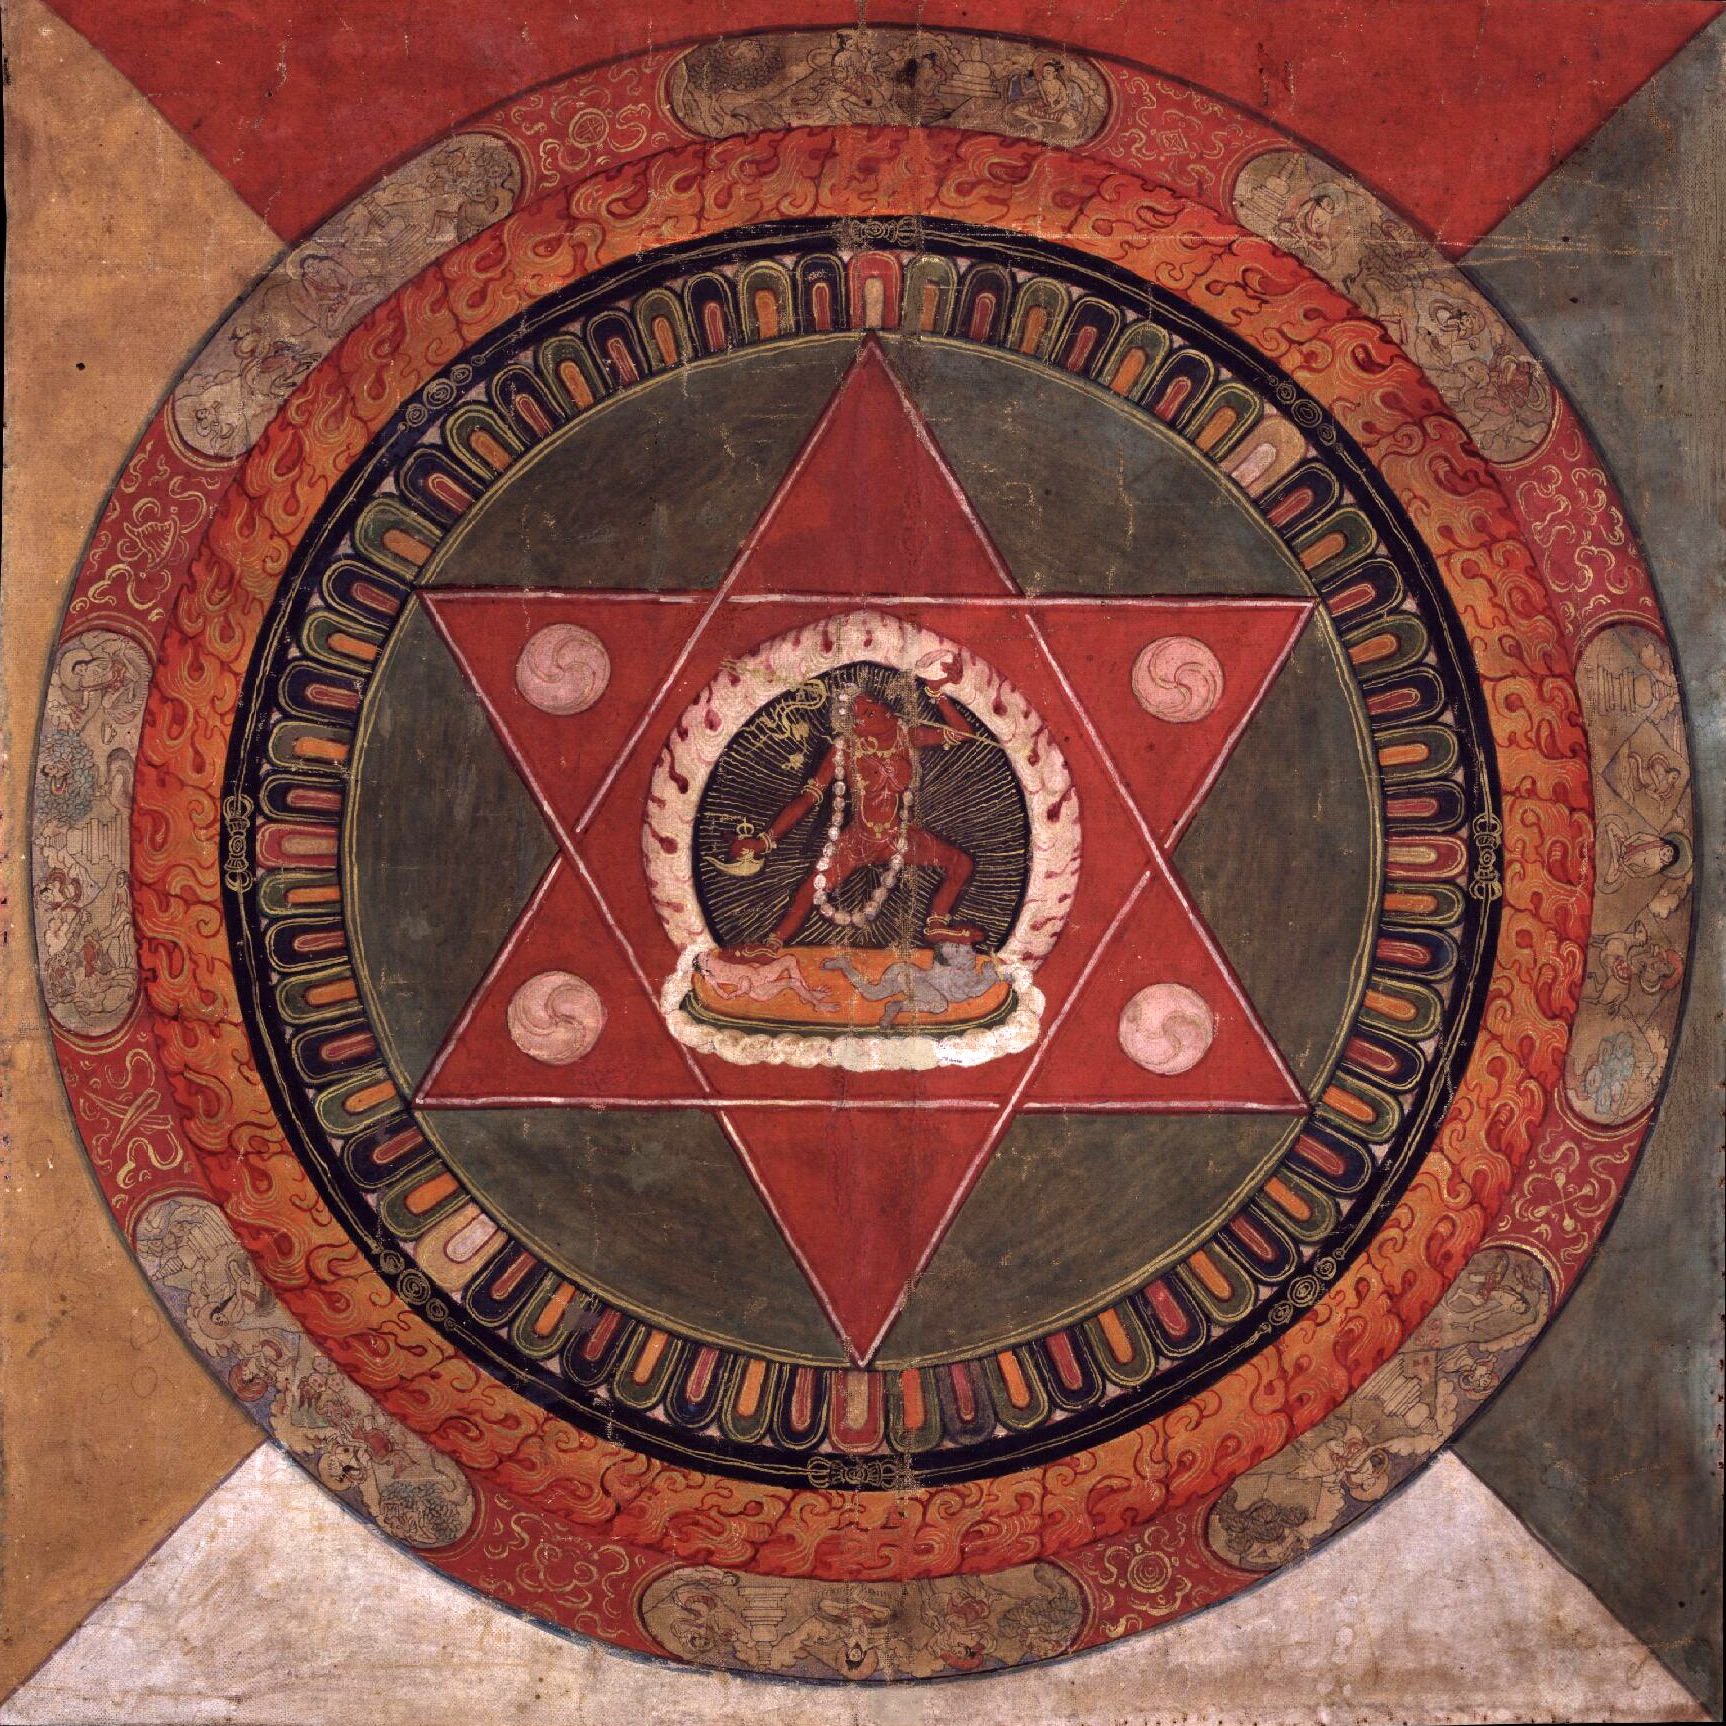 http://upload.wikimedia.org/wikipedia/commons/9/96/Painted_19th_century_Tibetan_mandala_of_the_Naropa_tradition%2C_Vajrayogini_stands_in_the_center_of_two_crossed_red_triangles%2C_Rubin_Museum_of_Art.jpg